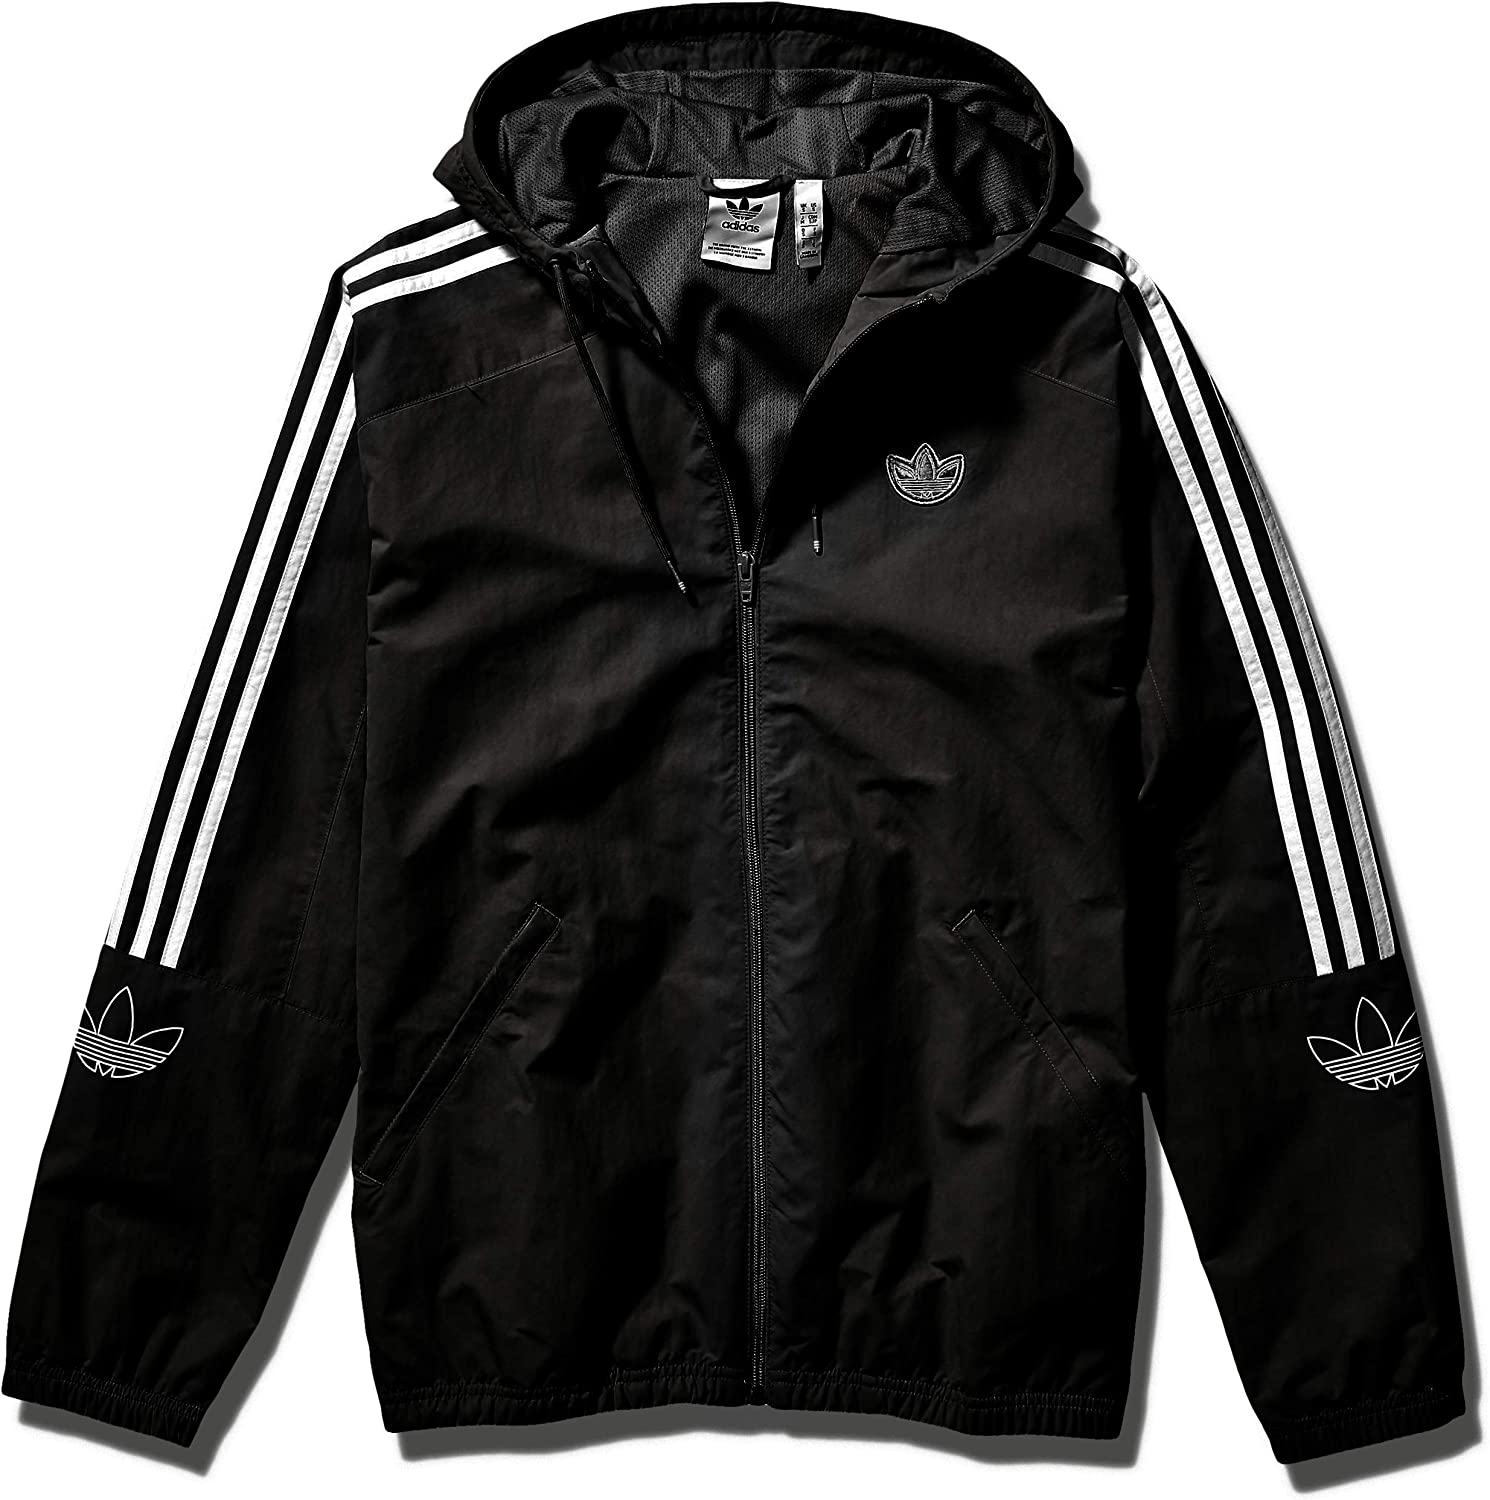 adidas Originals Men's Outline Trefoil Windbreaker Jacket